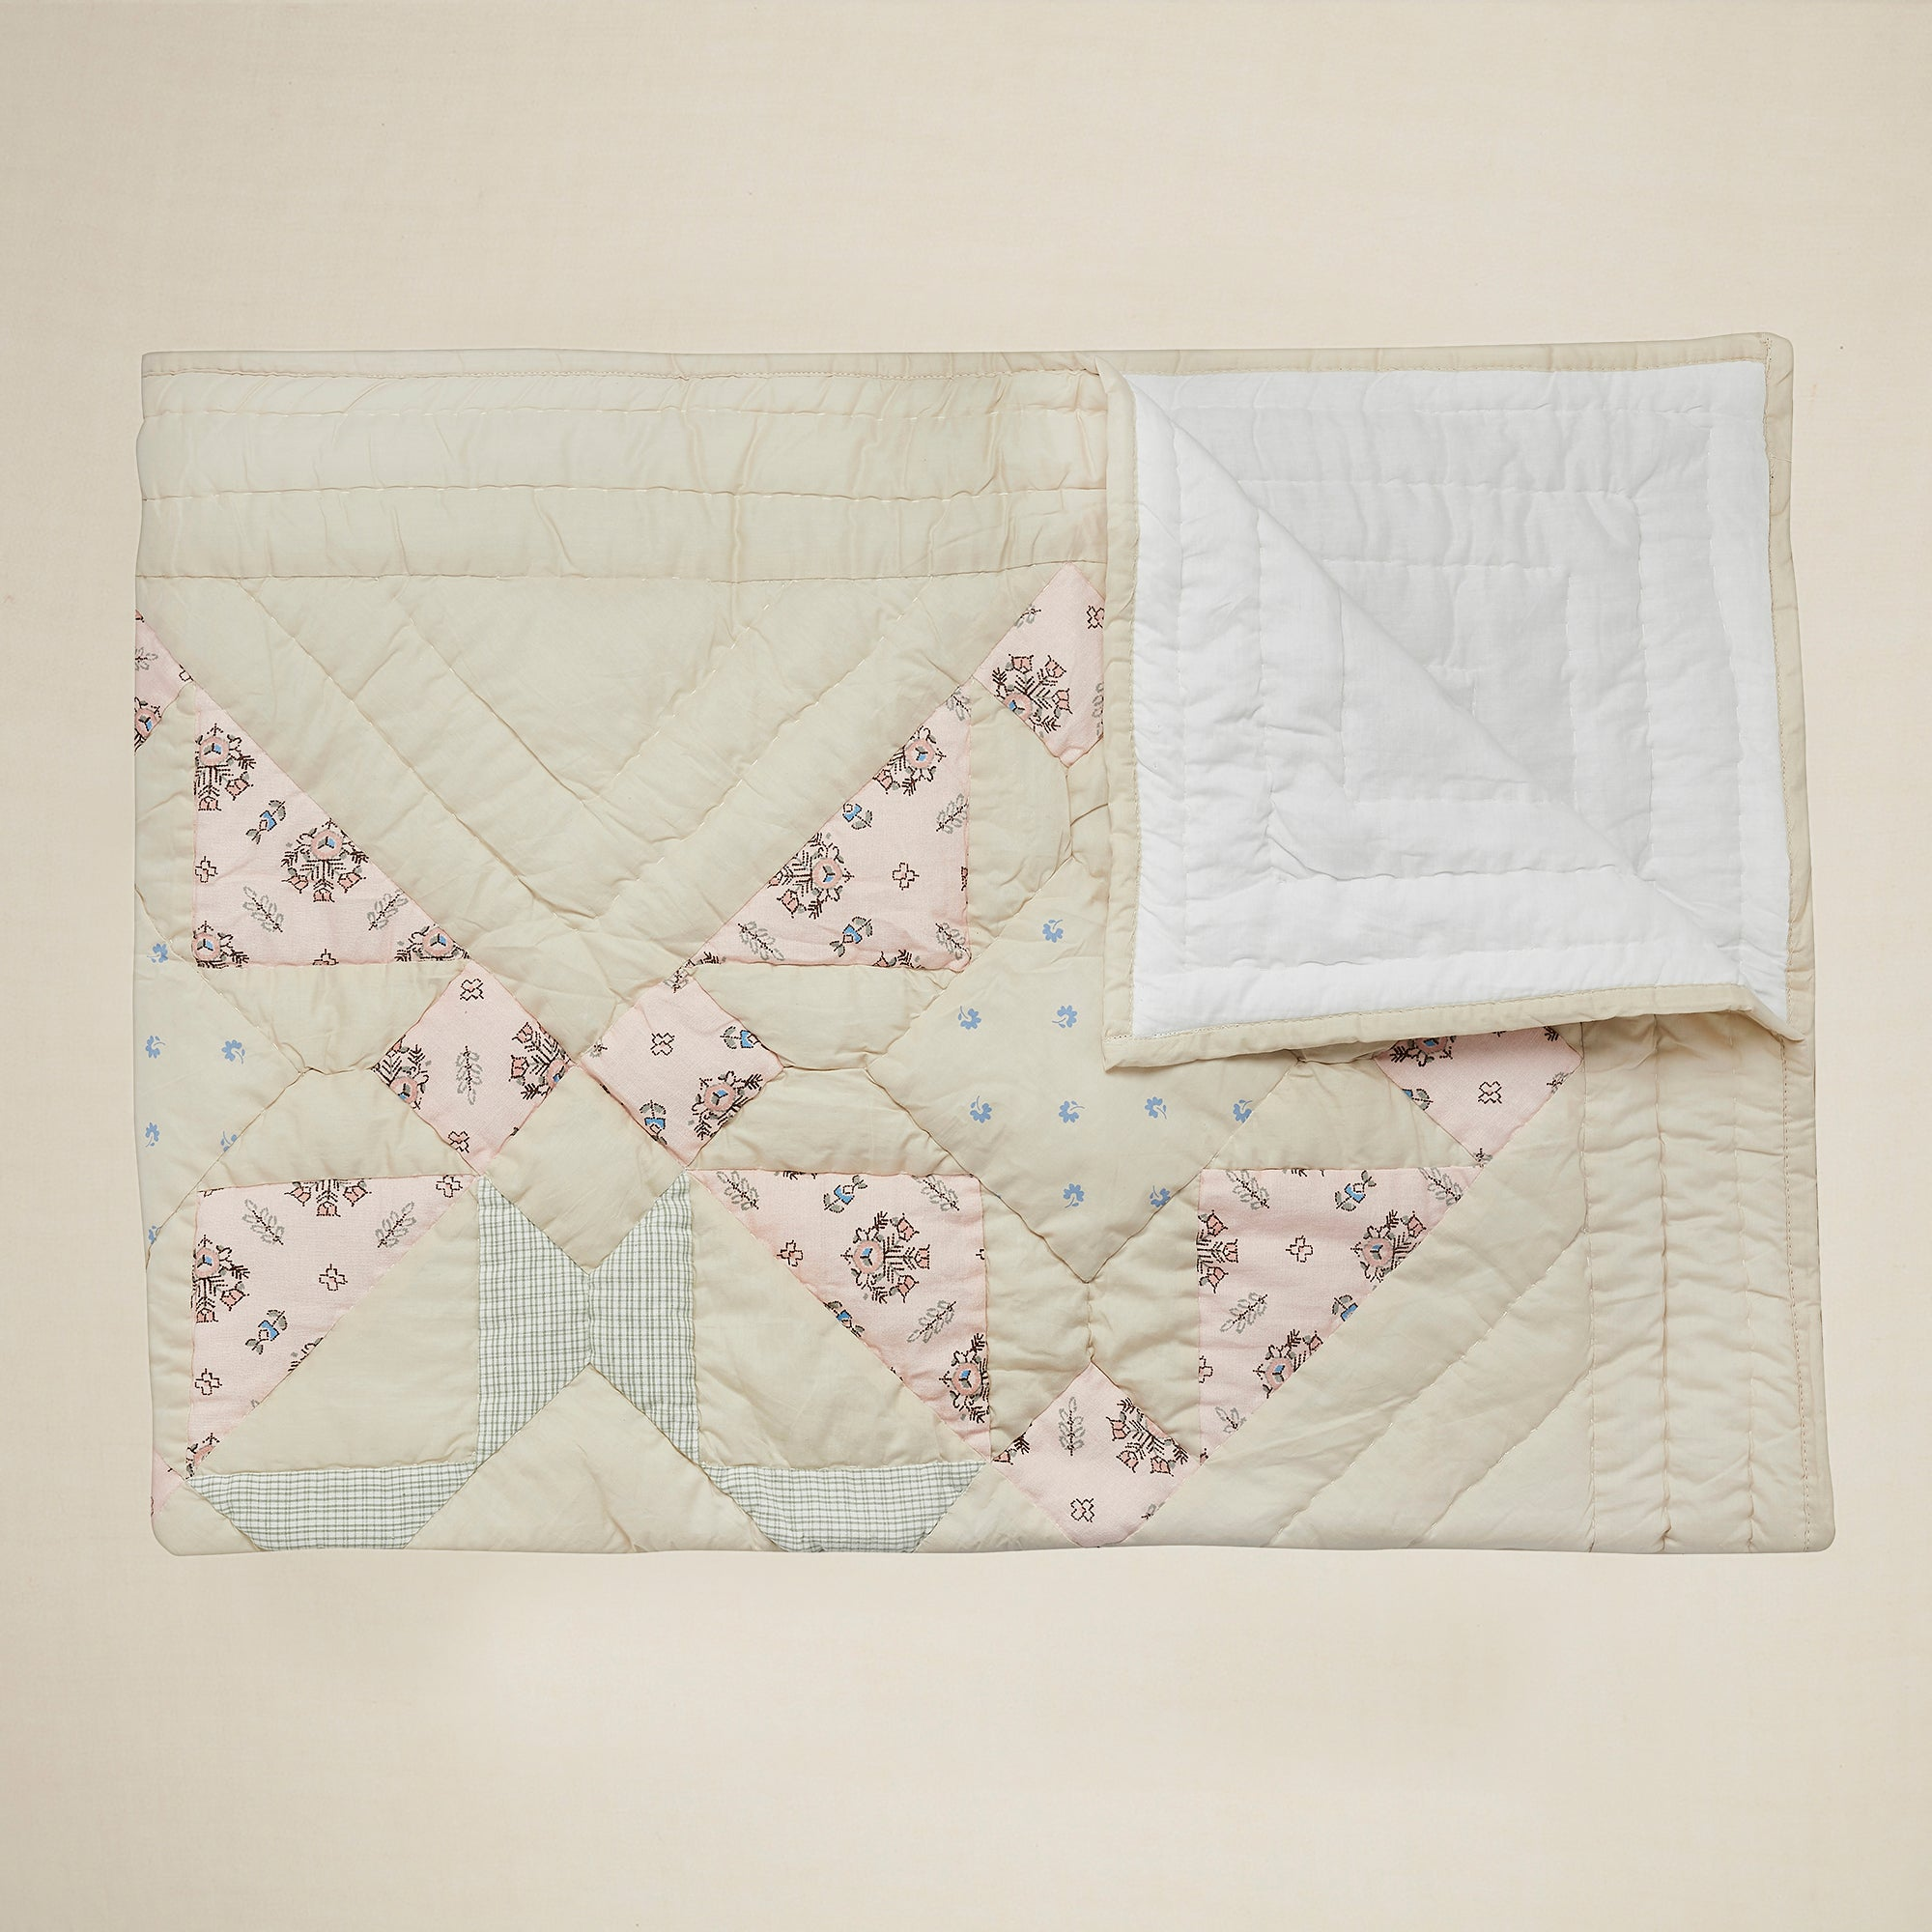 Apolina x Projekti Tyyny 'Saana Summit' Quilt (Medium)